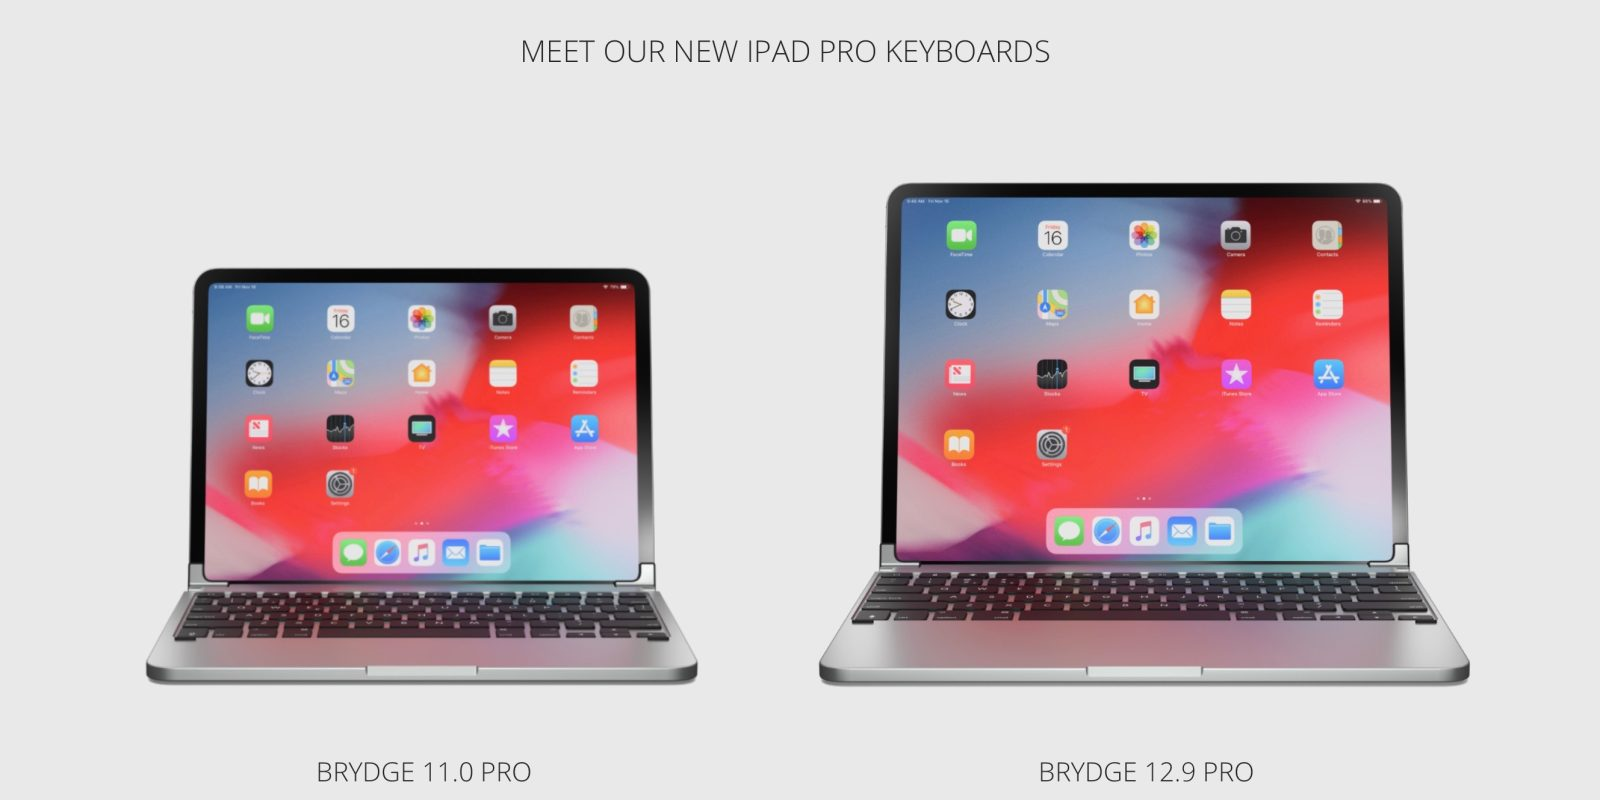 Brydge's new MacBook-style iPad Pro keyboards now available